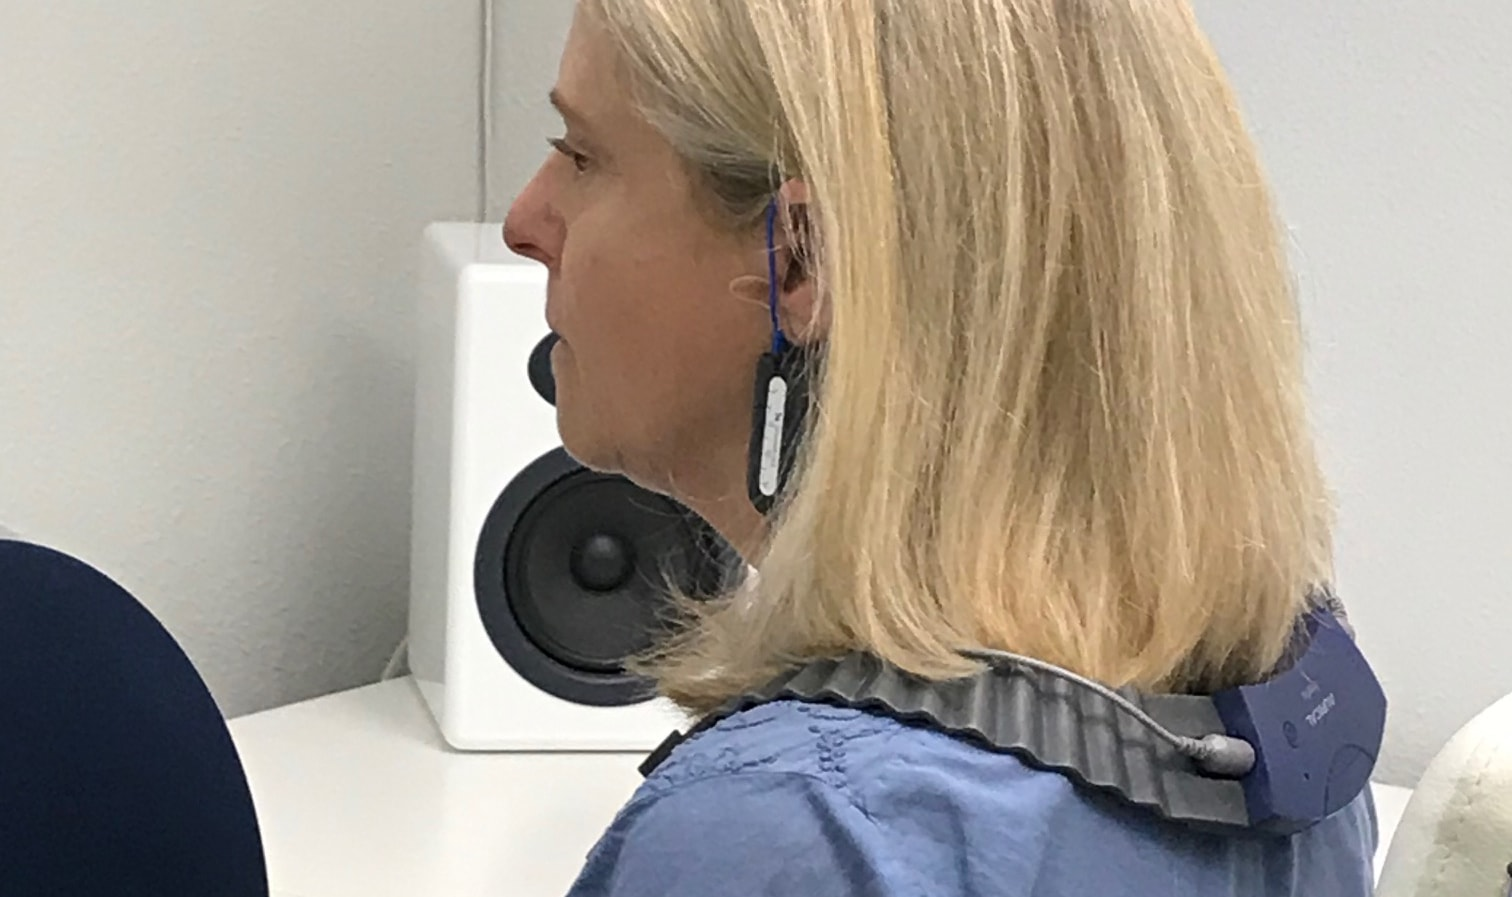 Improving patient experience with hearing aids using real ear measurements